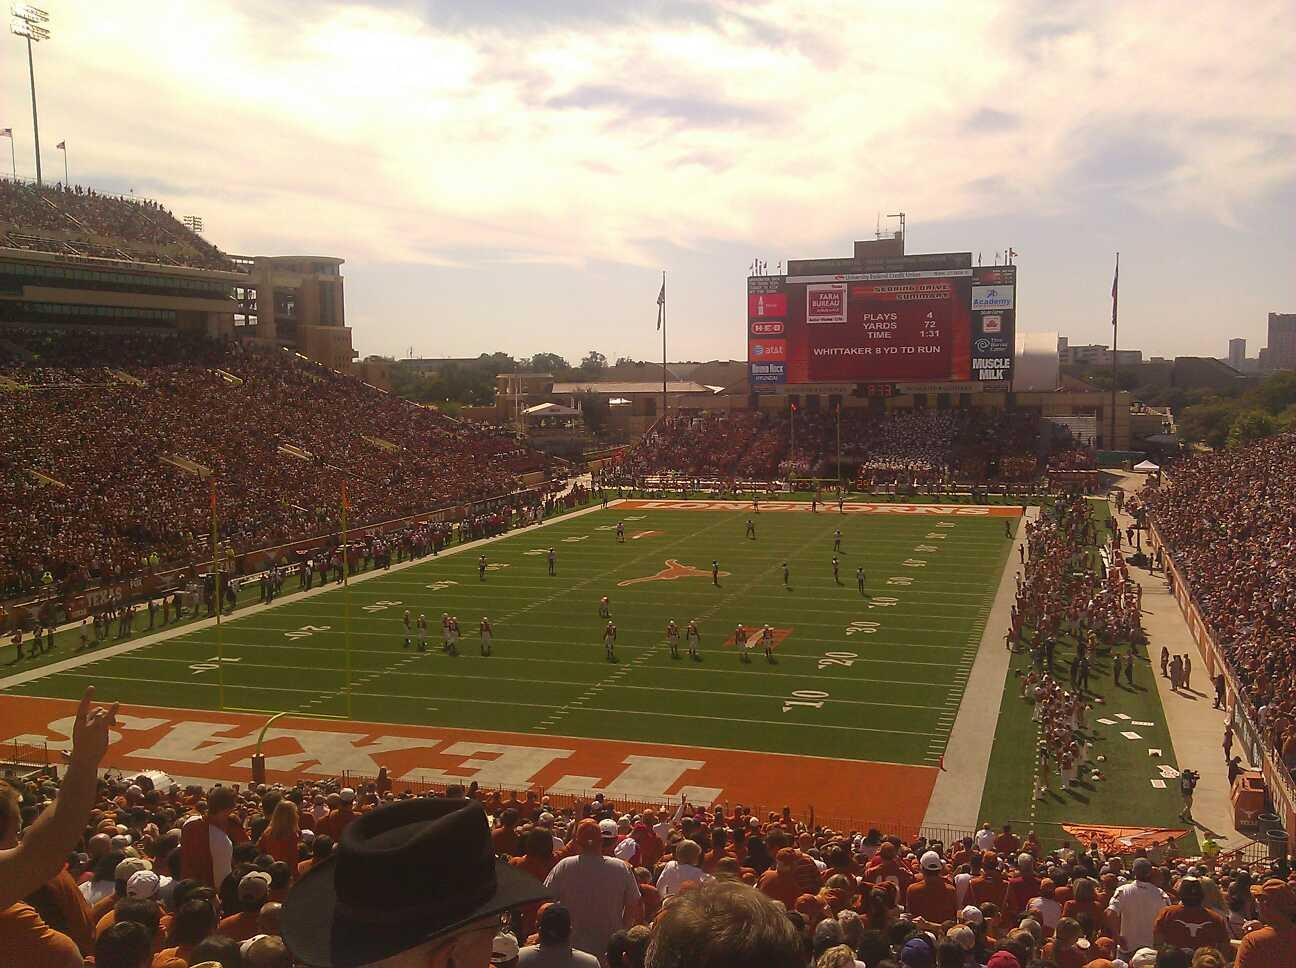 Texas Memorial Stadium Section 15 Row 52 Seat 1